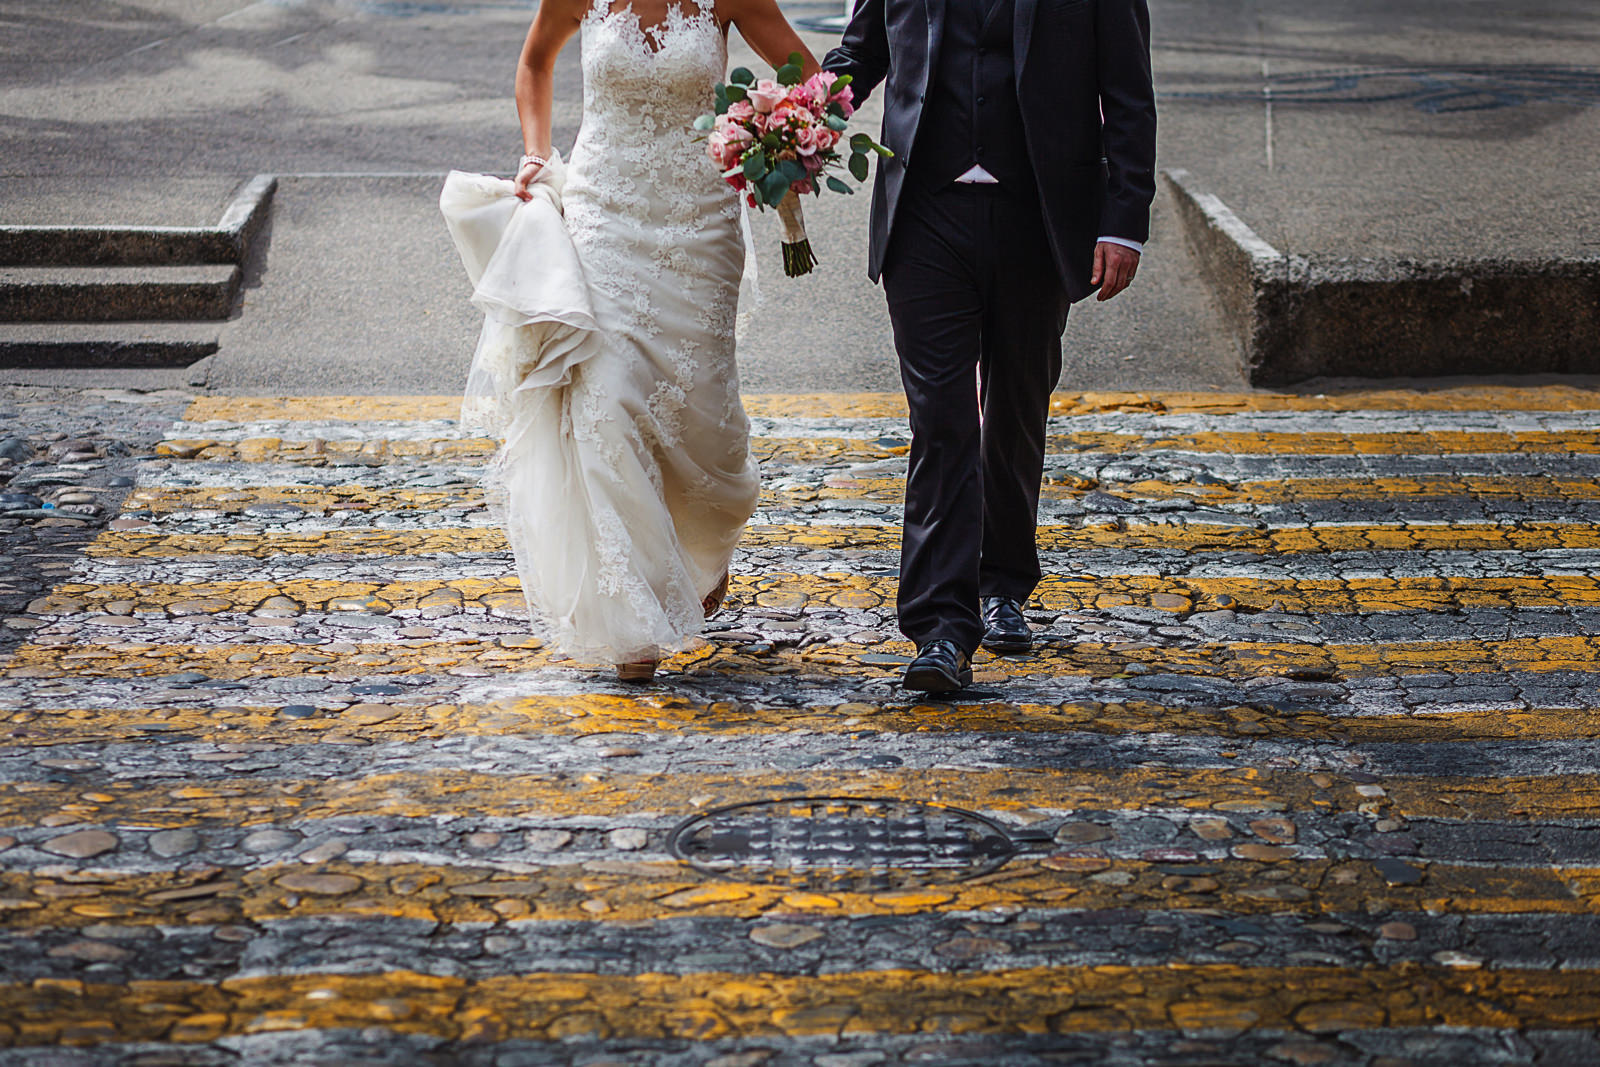 Groom and bride walking on yellow stripes downtown Puerto Vallarta, Mexico